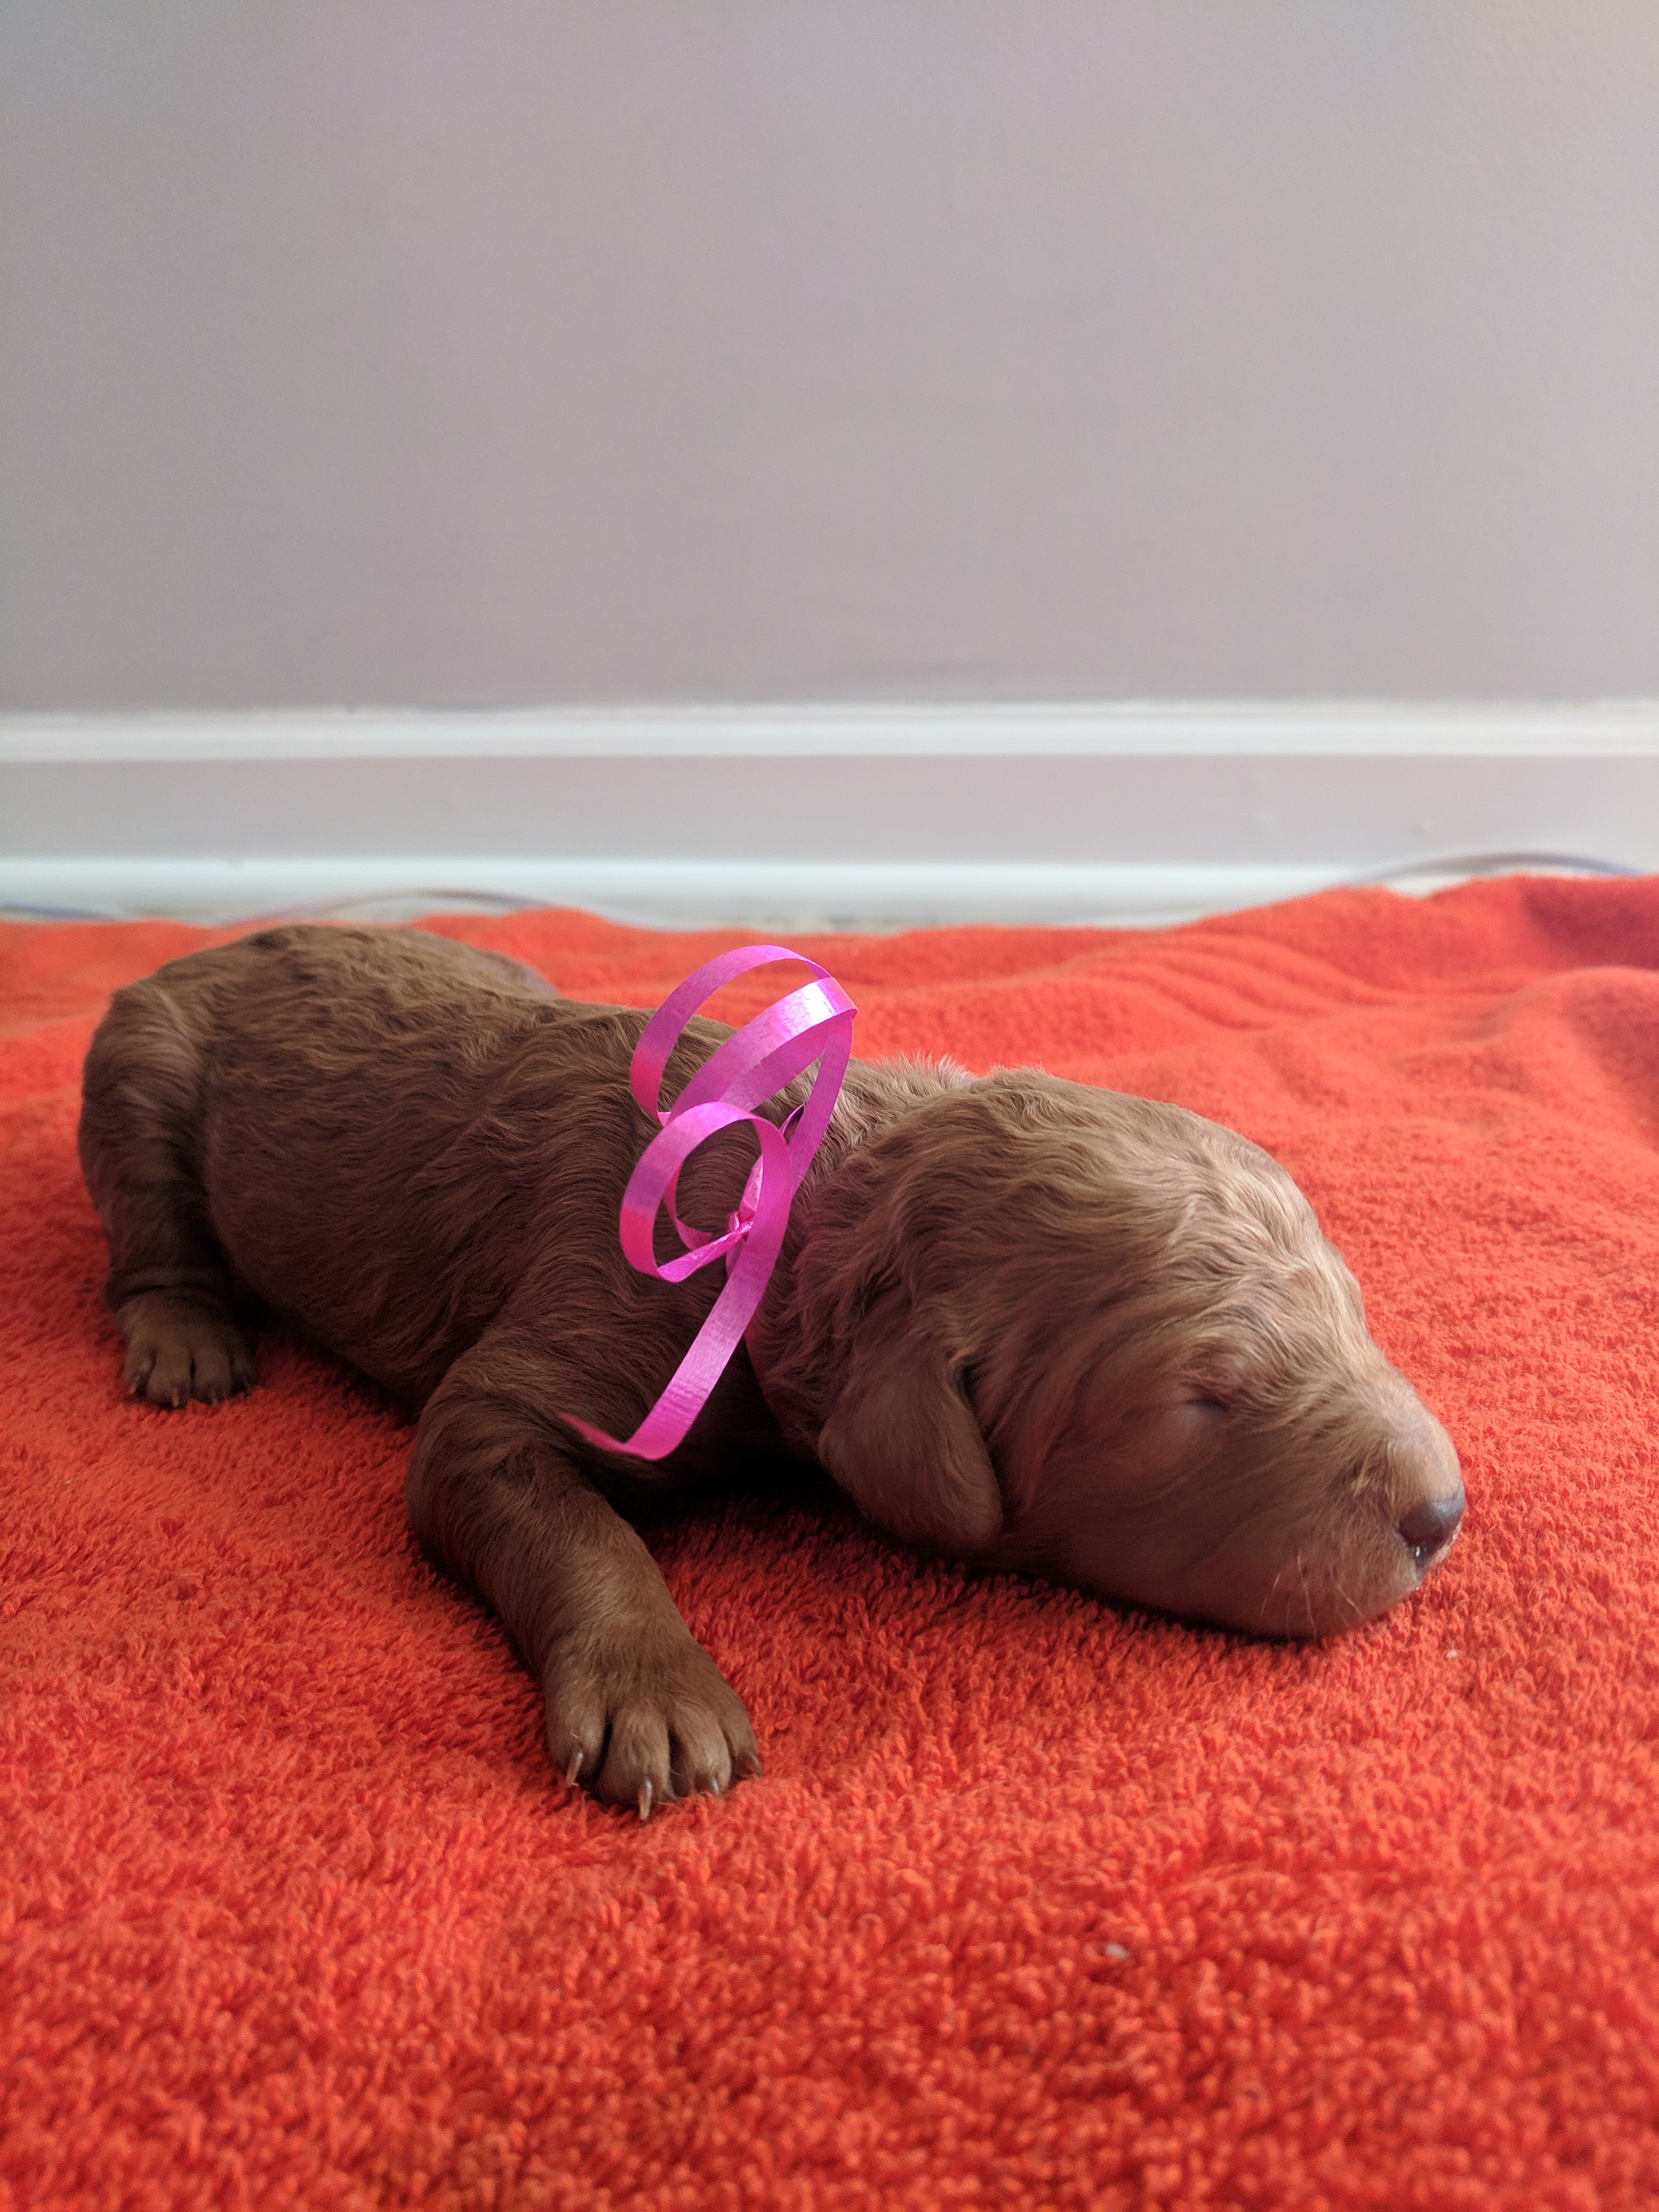 Cali A Female Akc Goldendoodle Puppy For Sale In Tennessee Vip